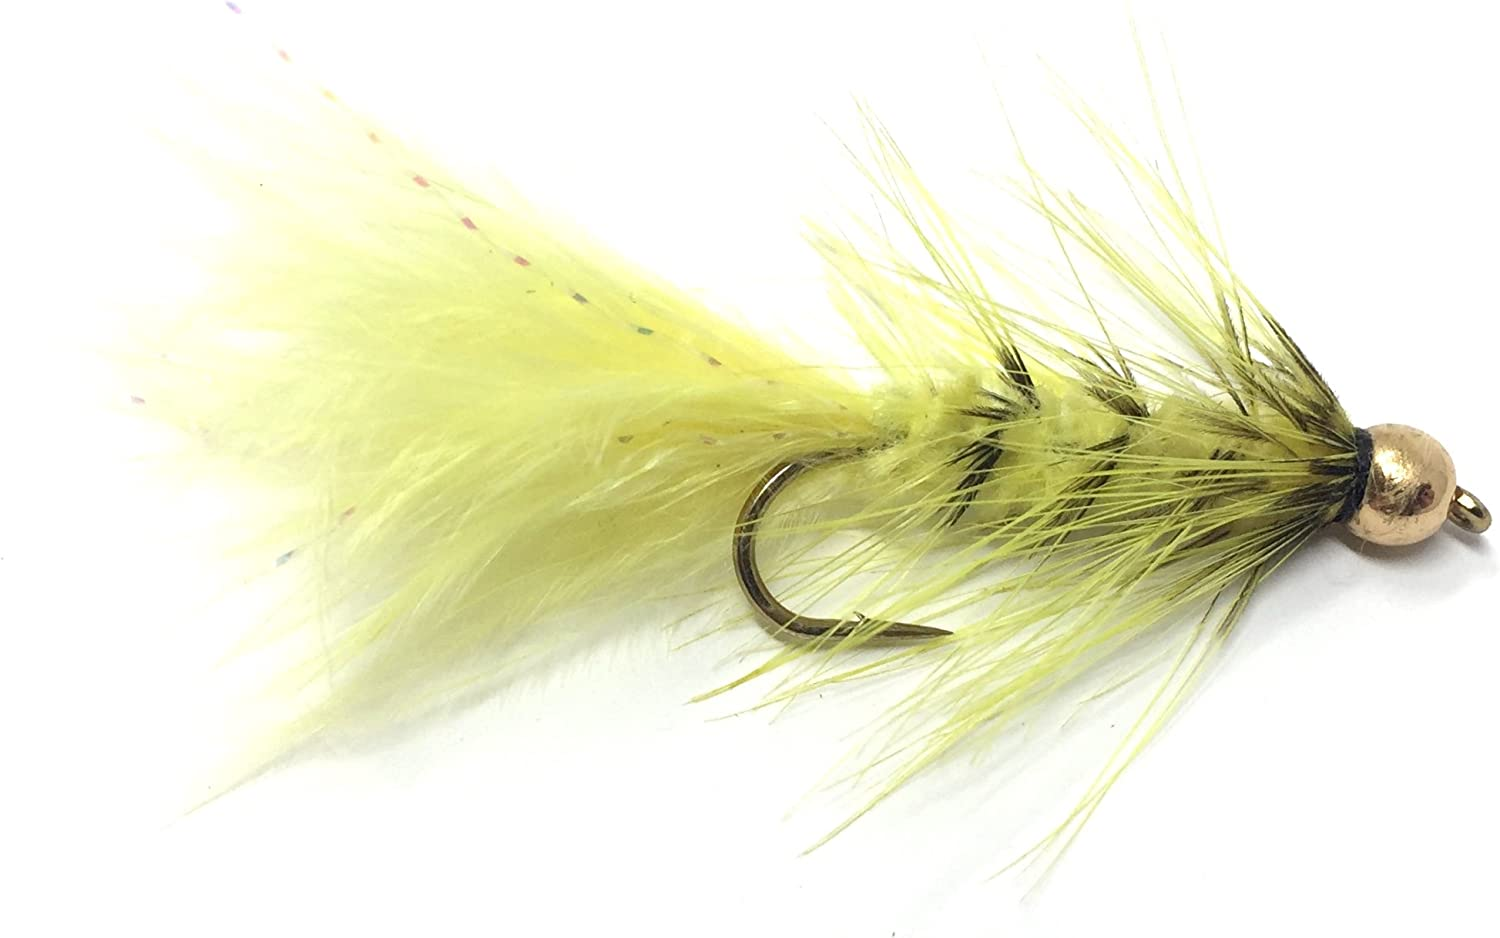 Feeder Creek Wooly Bugger Fly Fishing Flies for Trout, Bass and Salmon- 12pc Handmade Wet Flies for Freshwater Fishing in Various Patterns/Colors : Sports & Outdoors